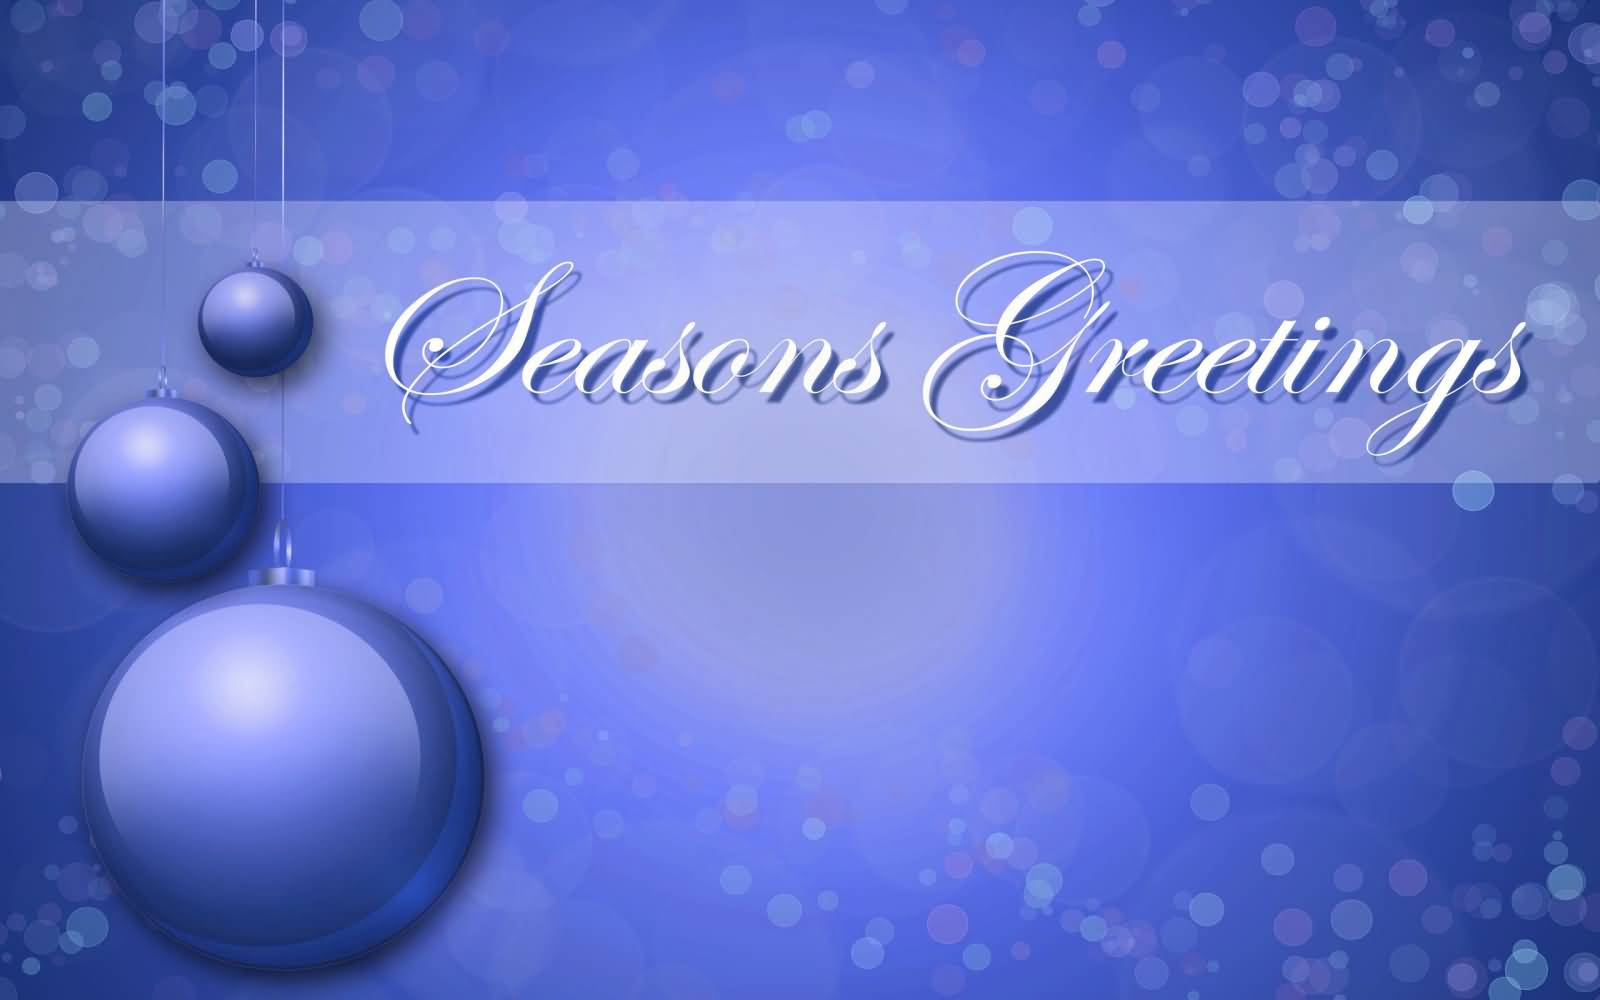 50 most beautiful seasons greeting pictures and photos seasons greetings 2016 wallpaper kristyandbryce Gallery